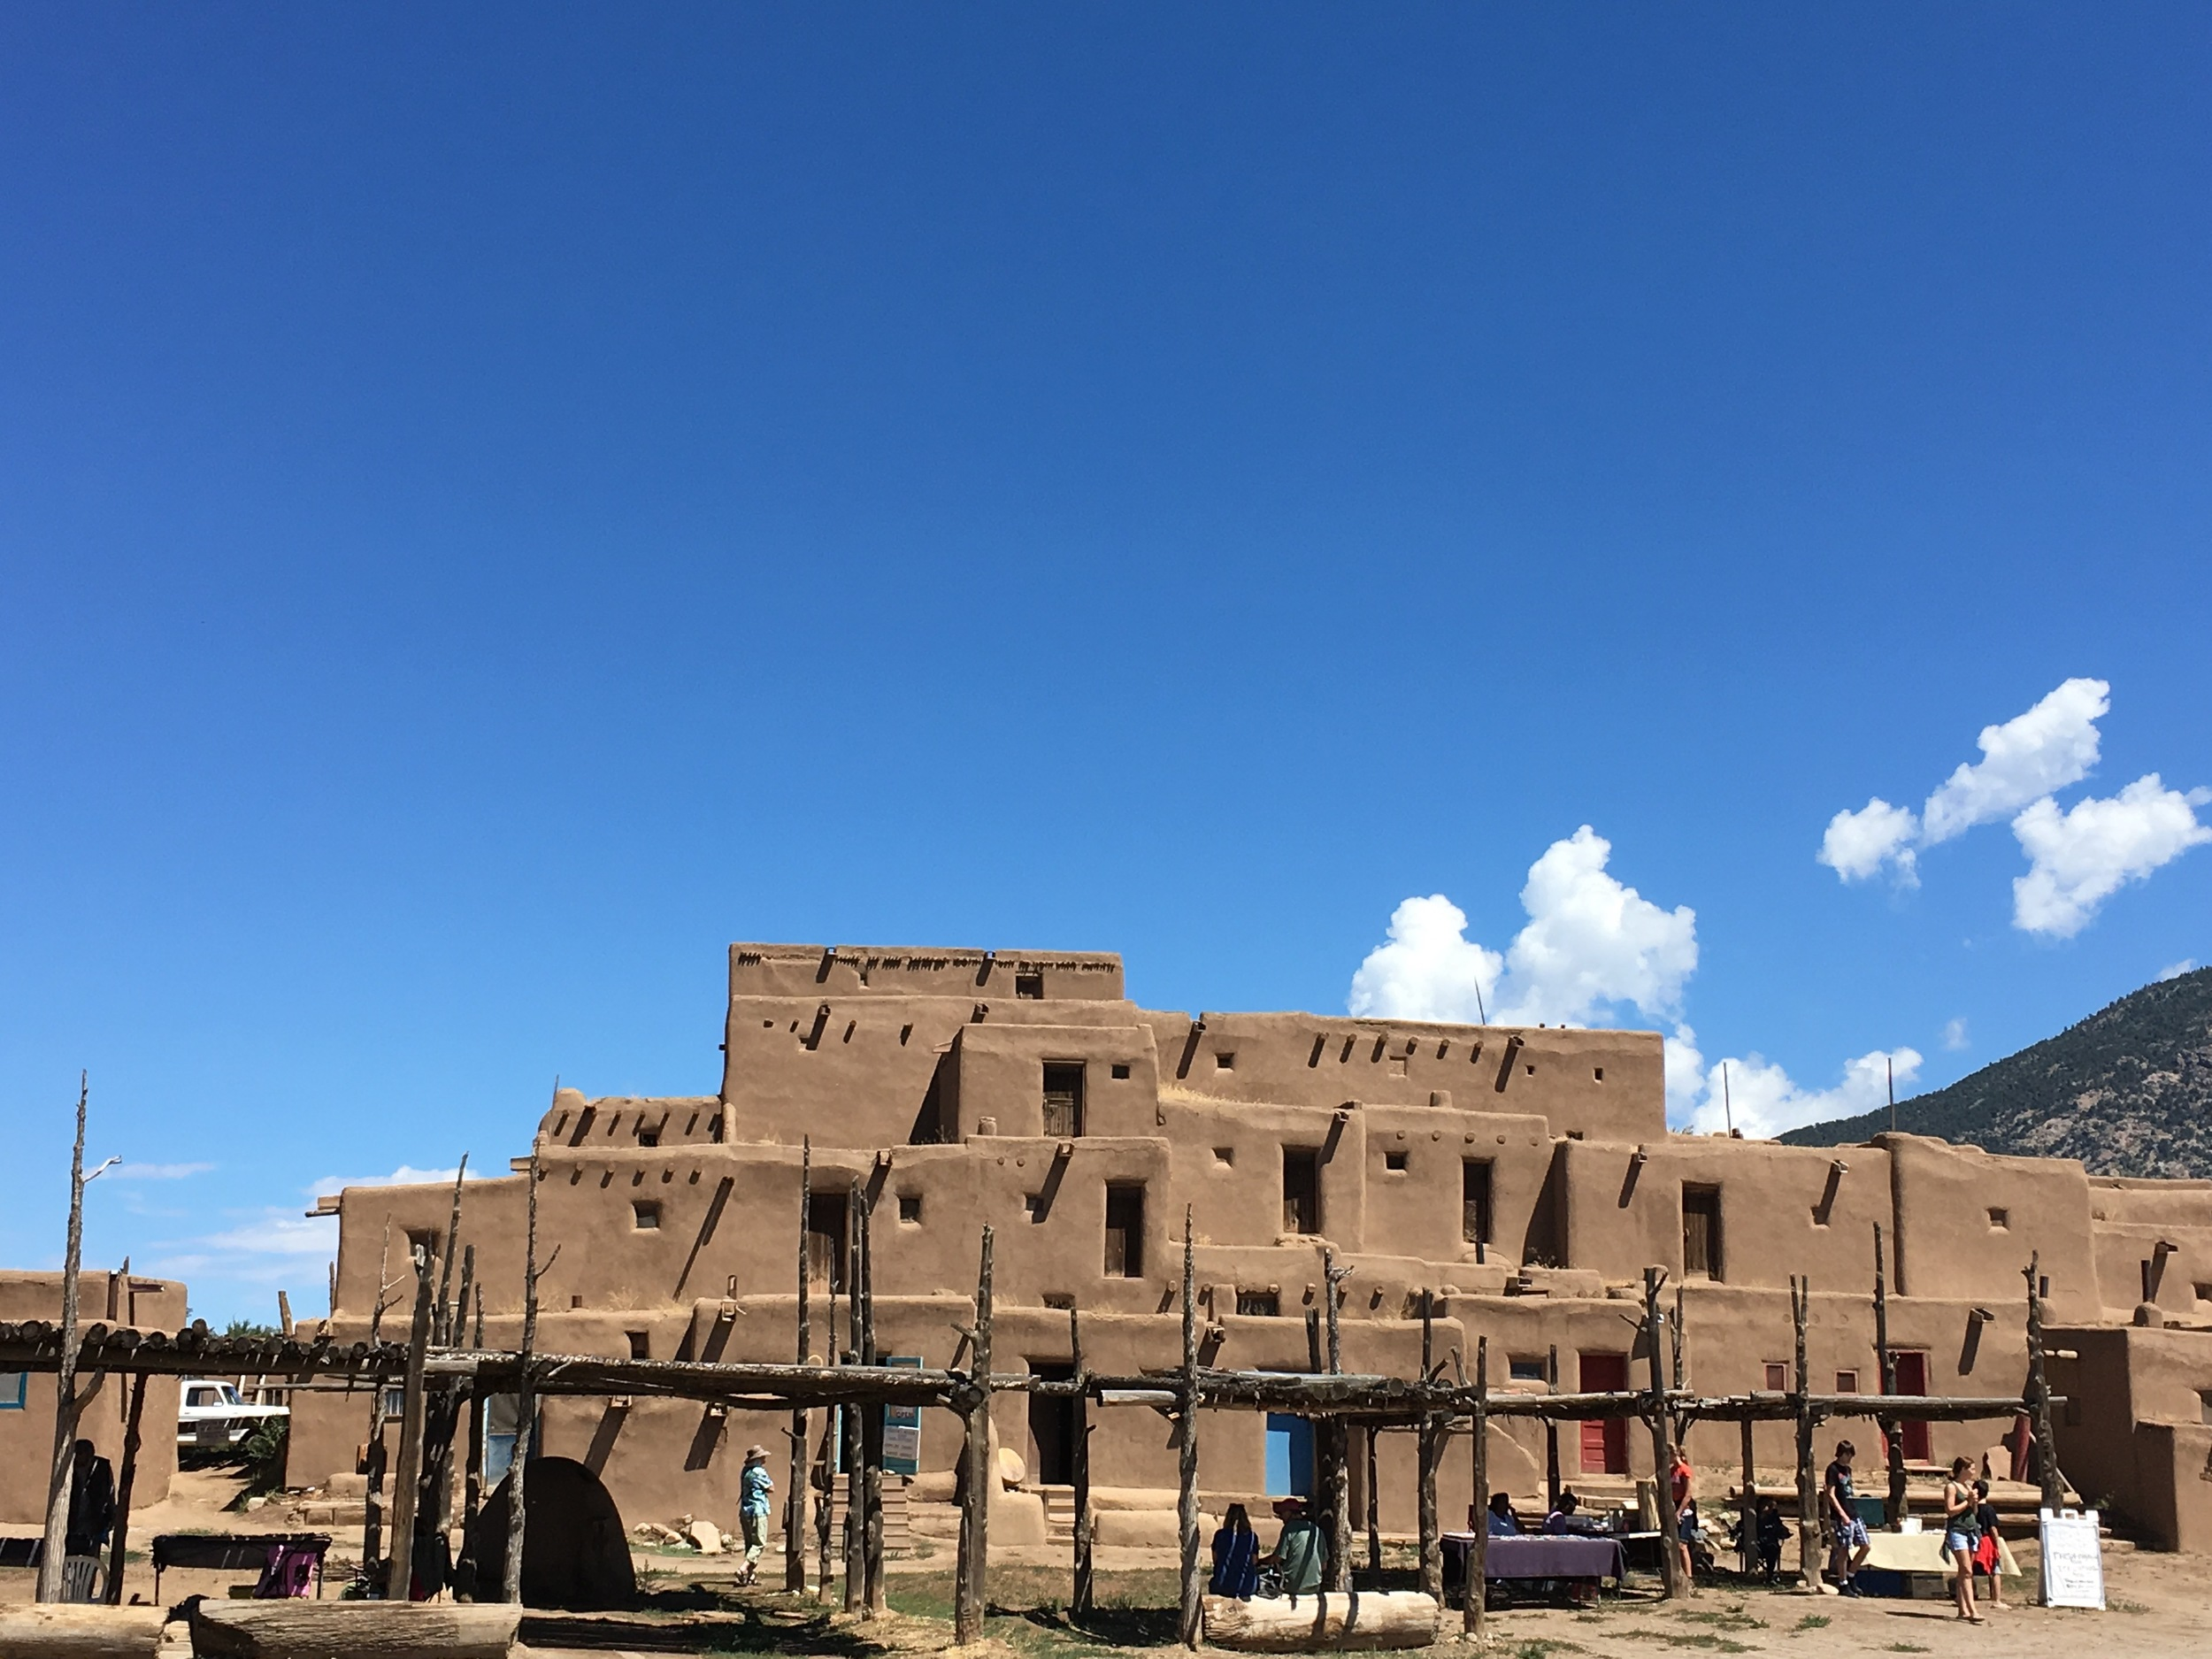 Taos Pueblo, continuously occupied for over 1000 years